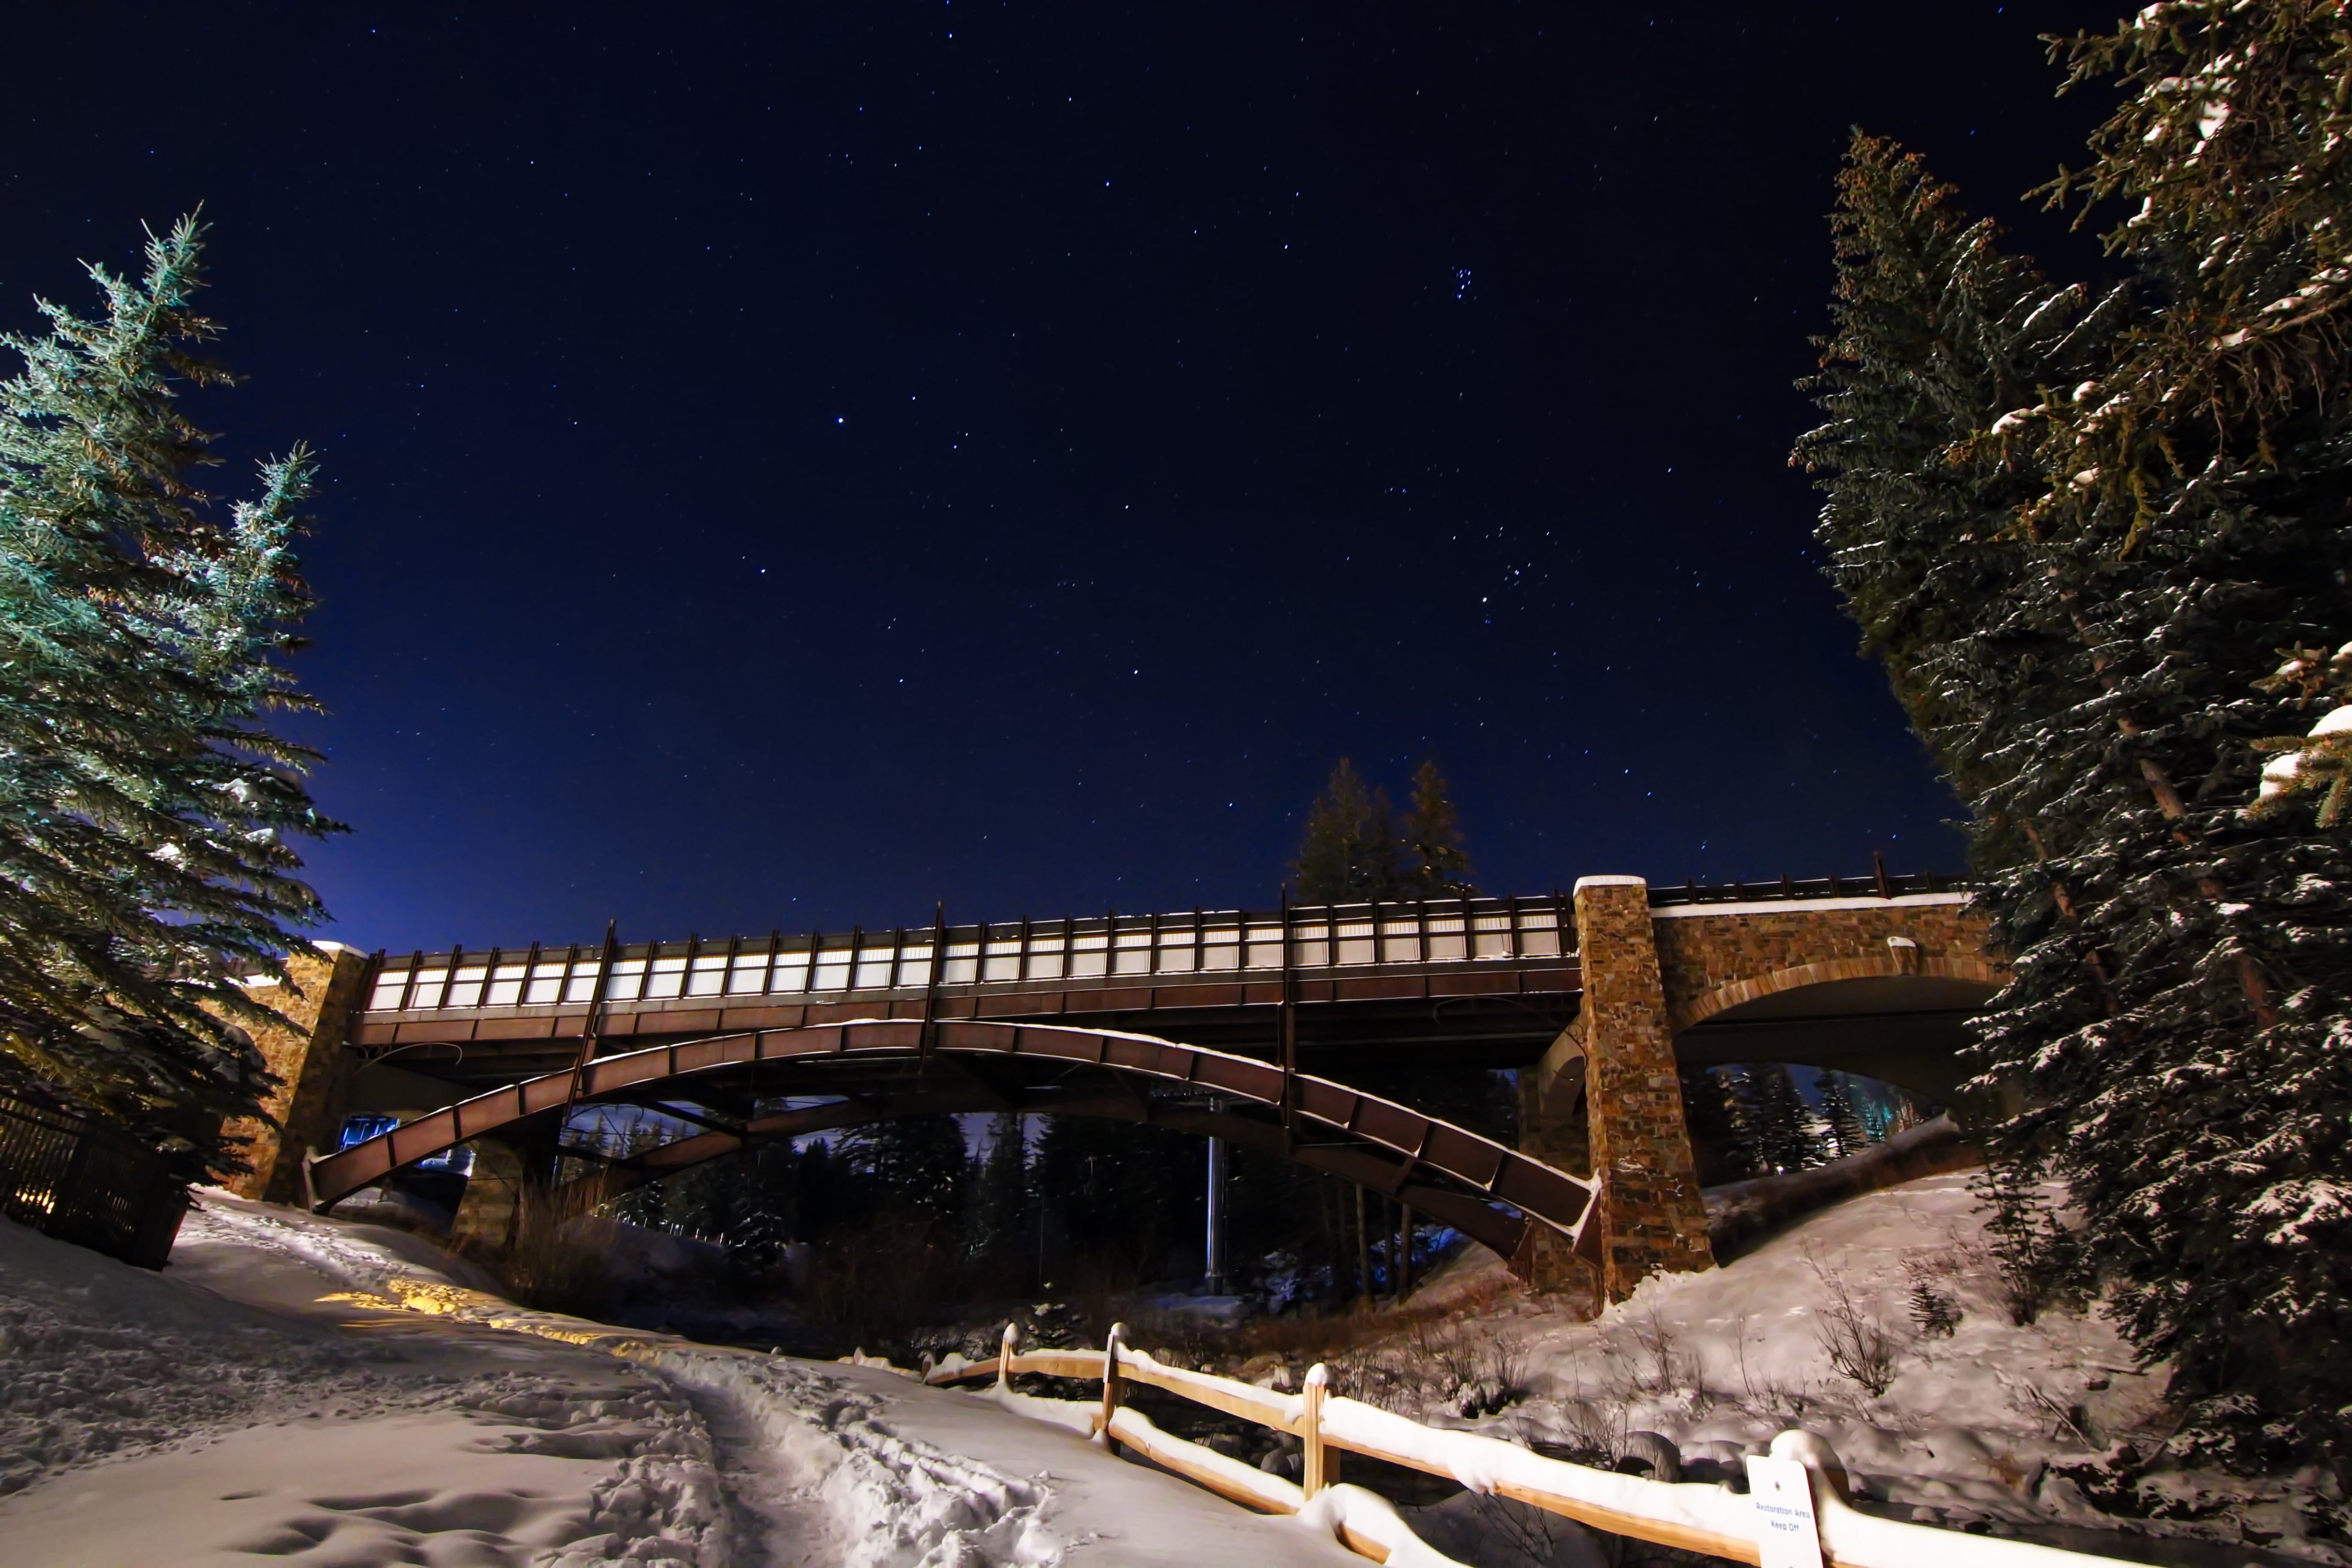 A bridge crossing over a fenced road at the Vail Ski Resort in Colorado